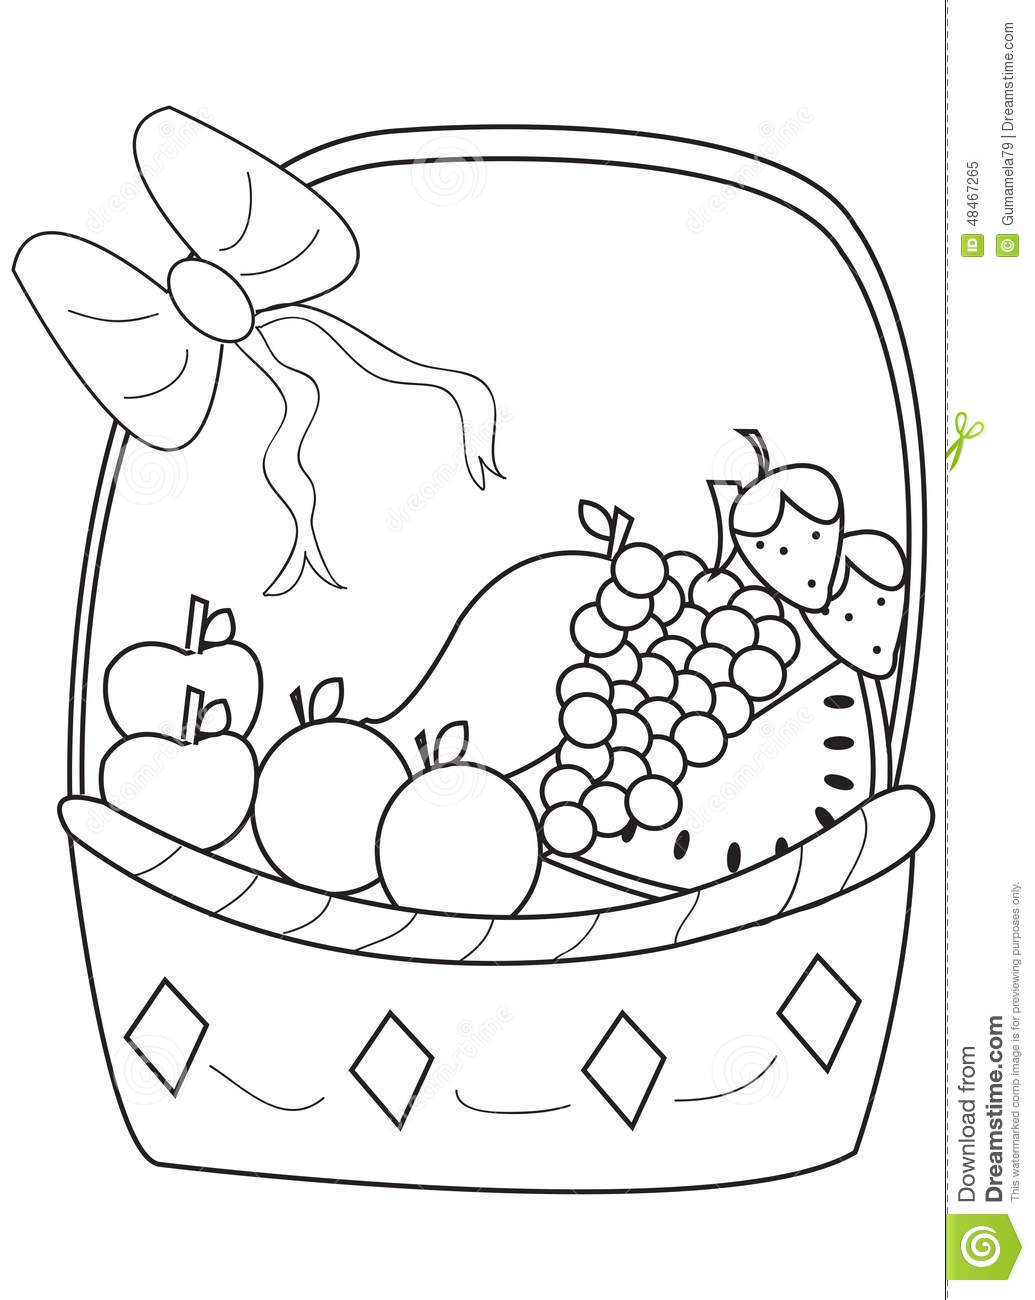 Stock Illustration Hand Drawn Coloring Page Fruit Basket Cartoon Healthy Delicious Image48467265 on Healthy Food Coloring Pages For Kids